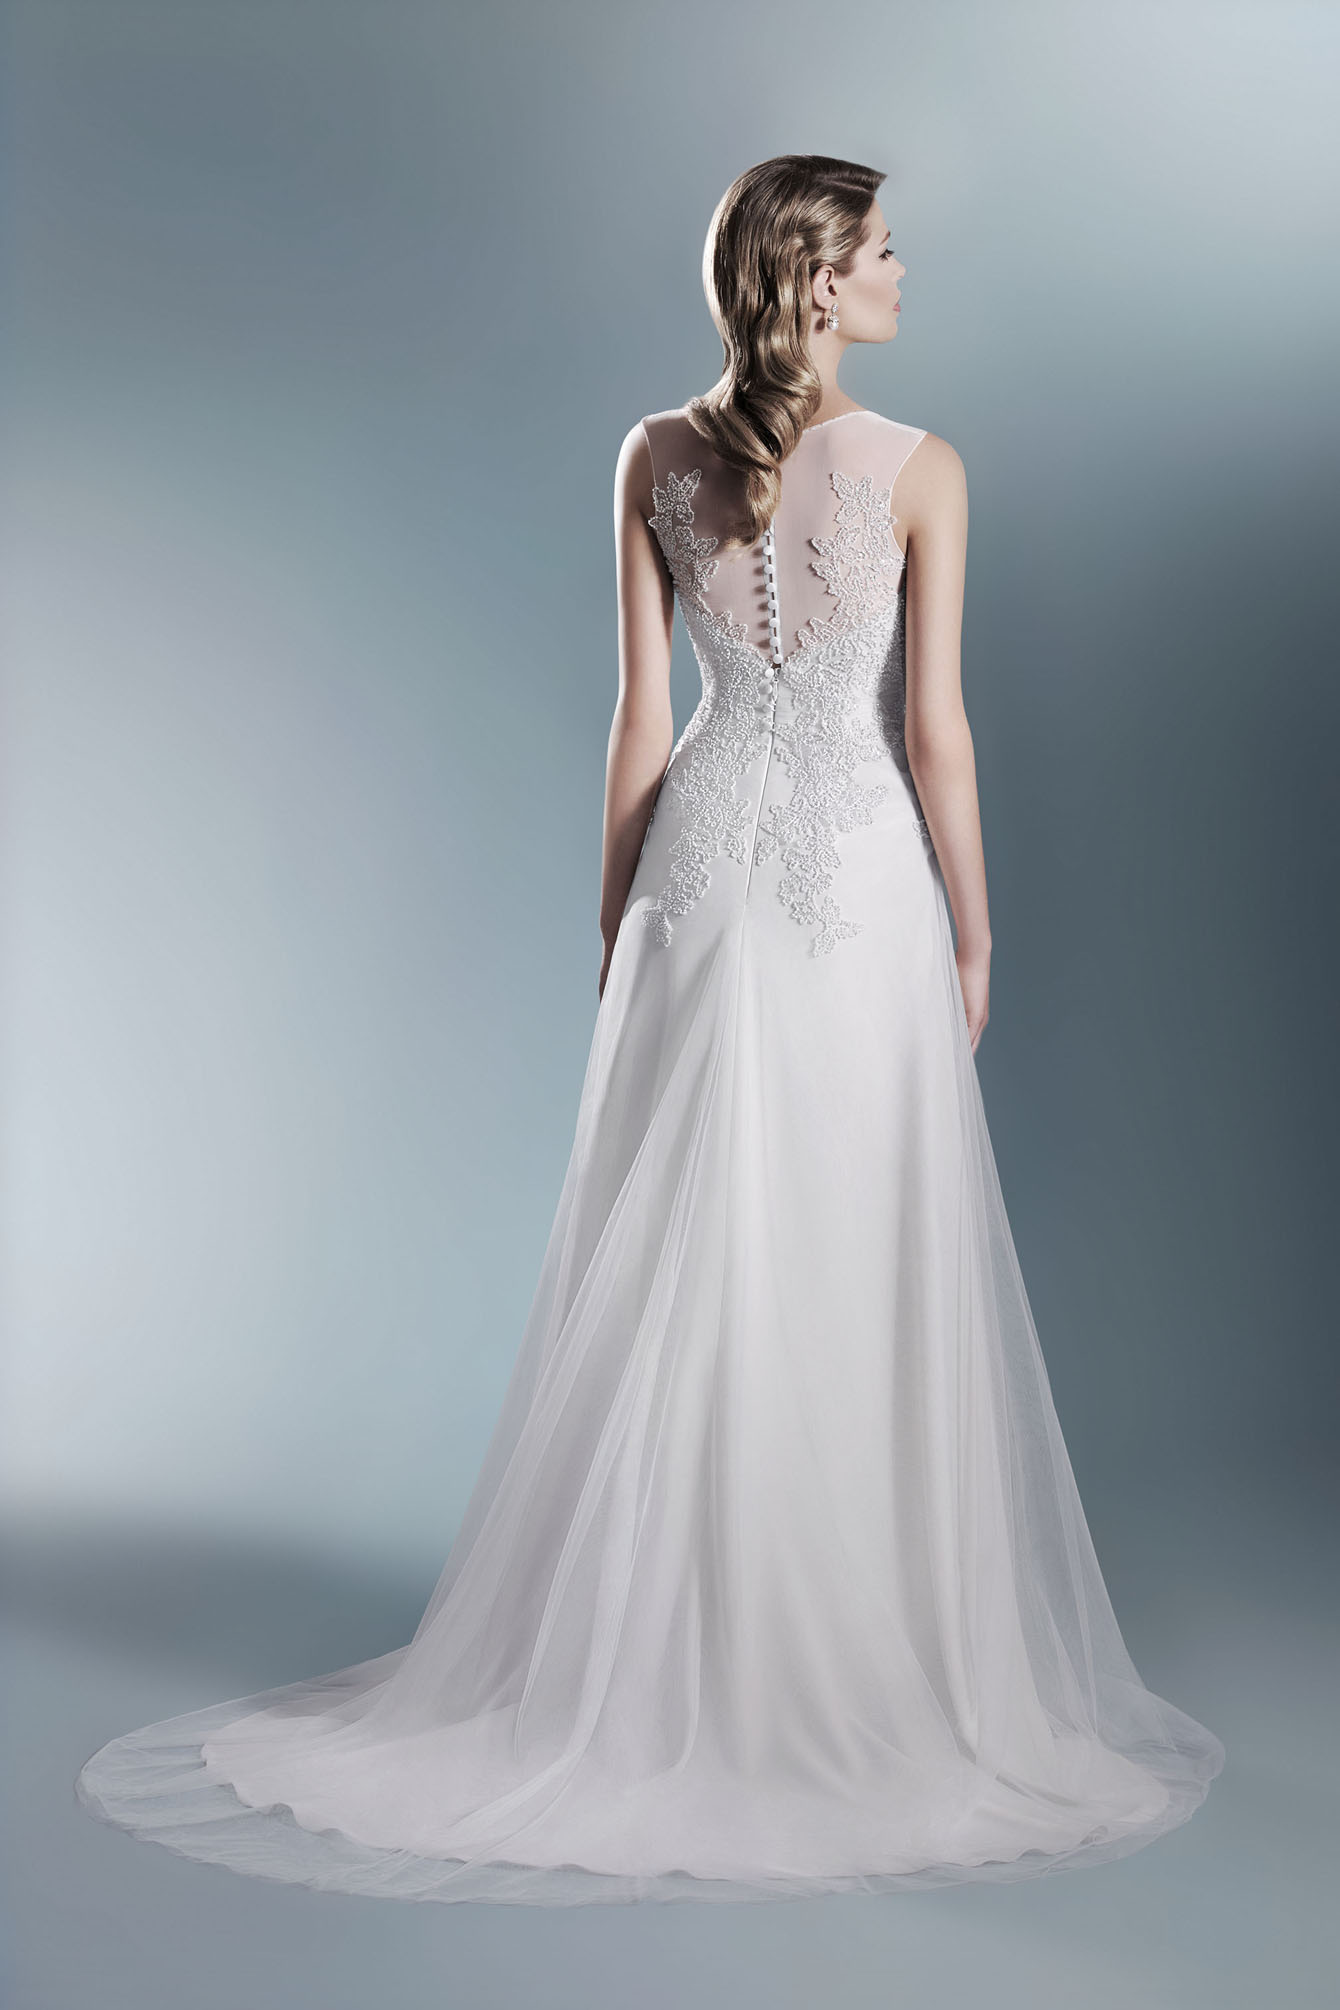 TO-660T - The One 2017 - Wedding dresses - Agnes - lace wedding ...